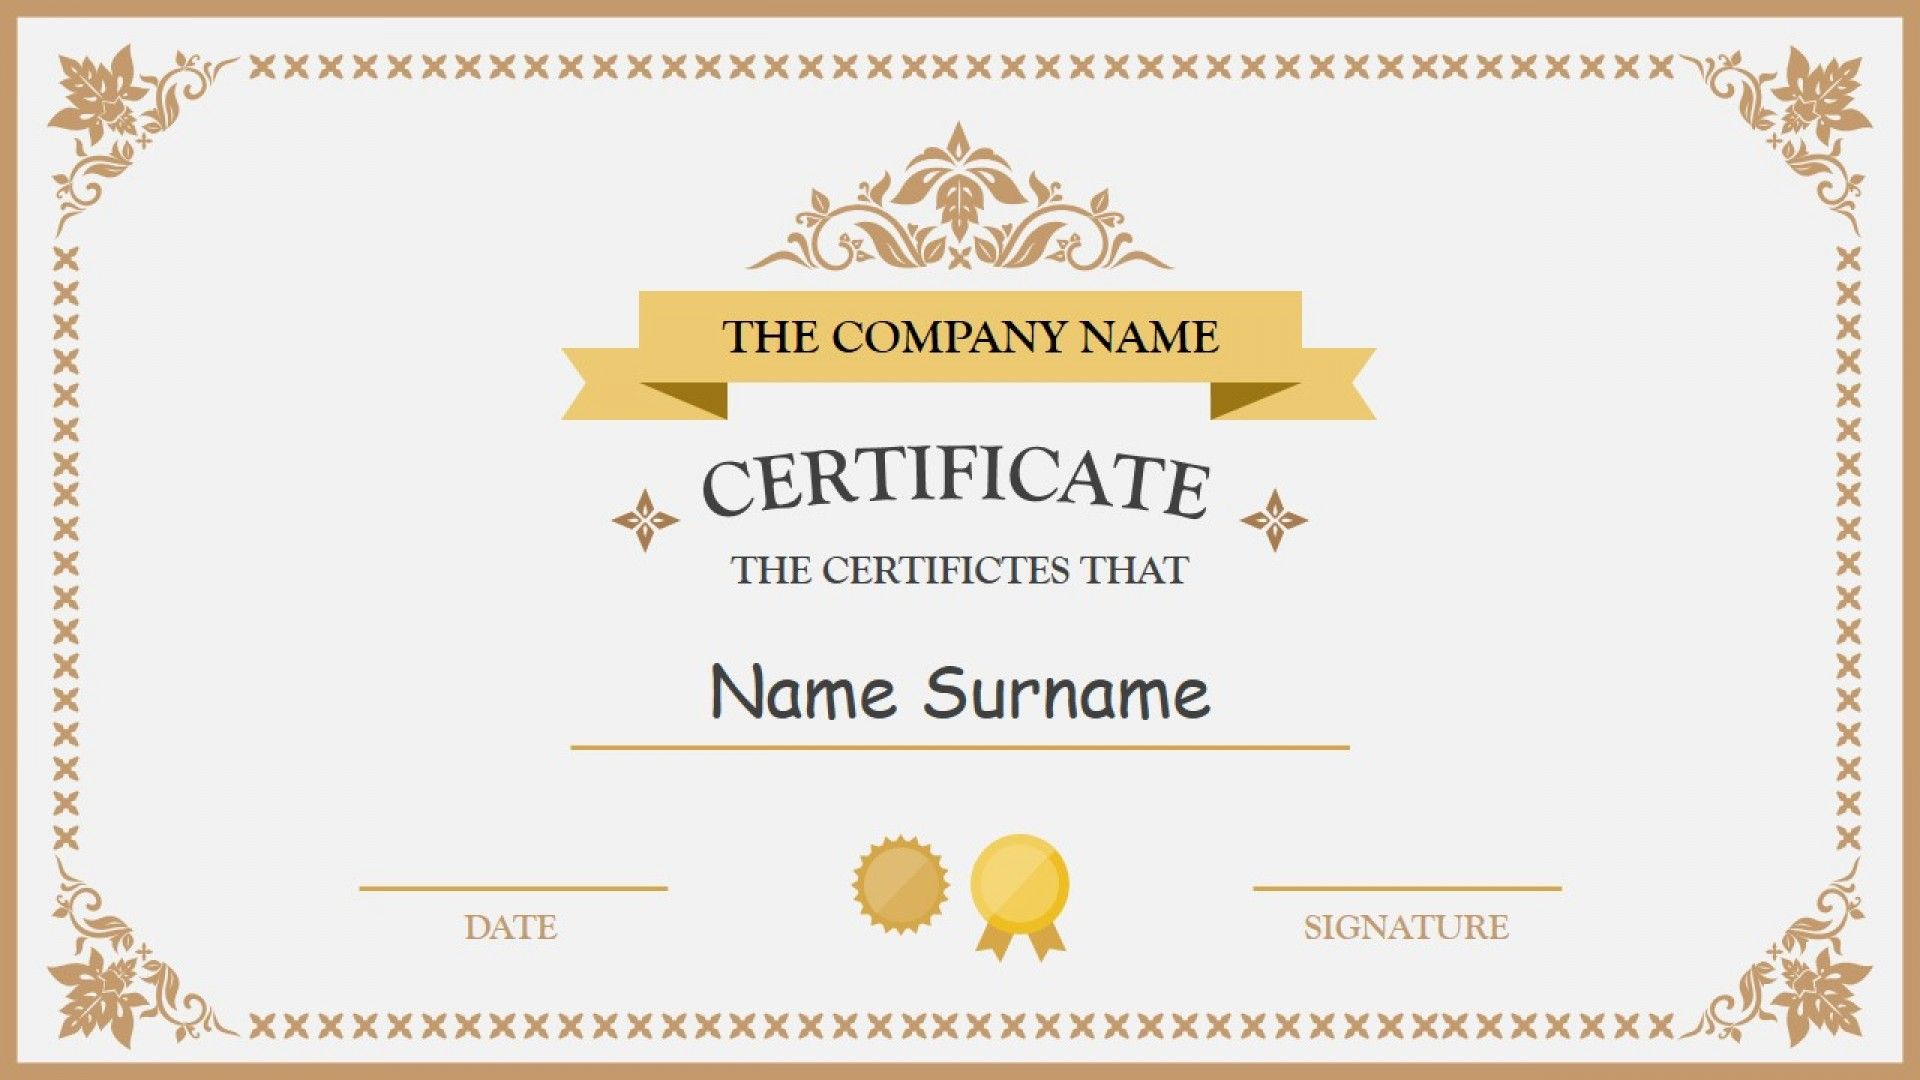 028 Free Blank Certificate Templates Template Ideas Intended For